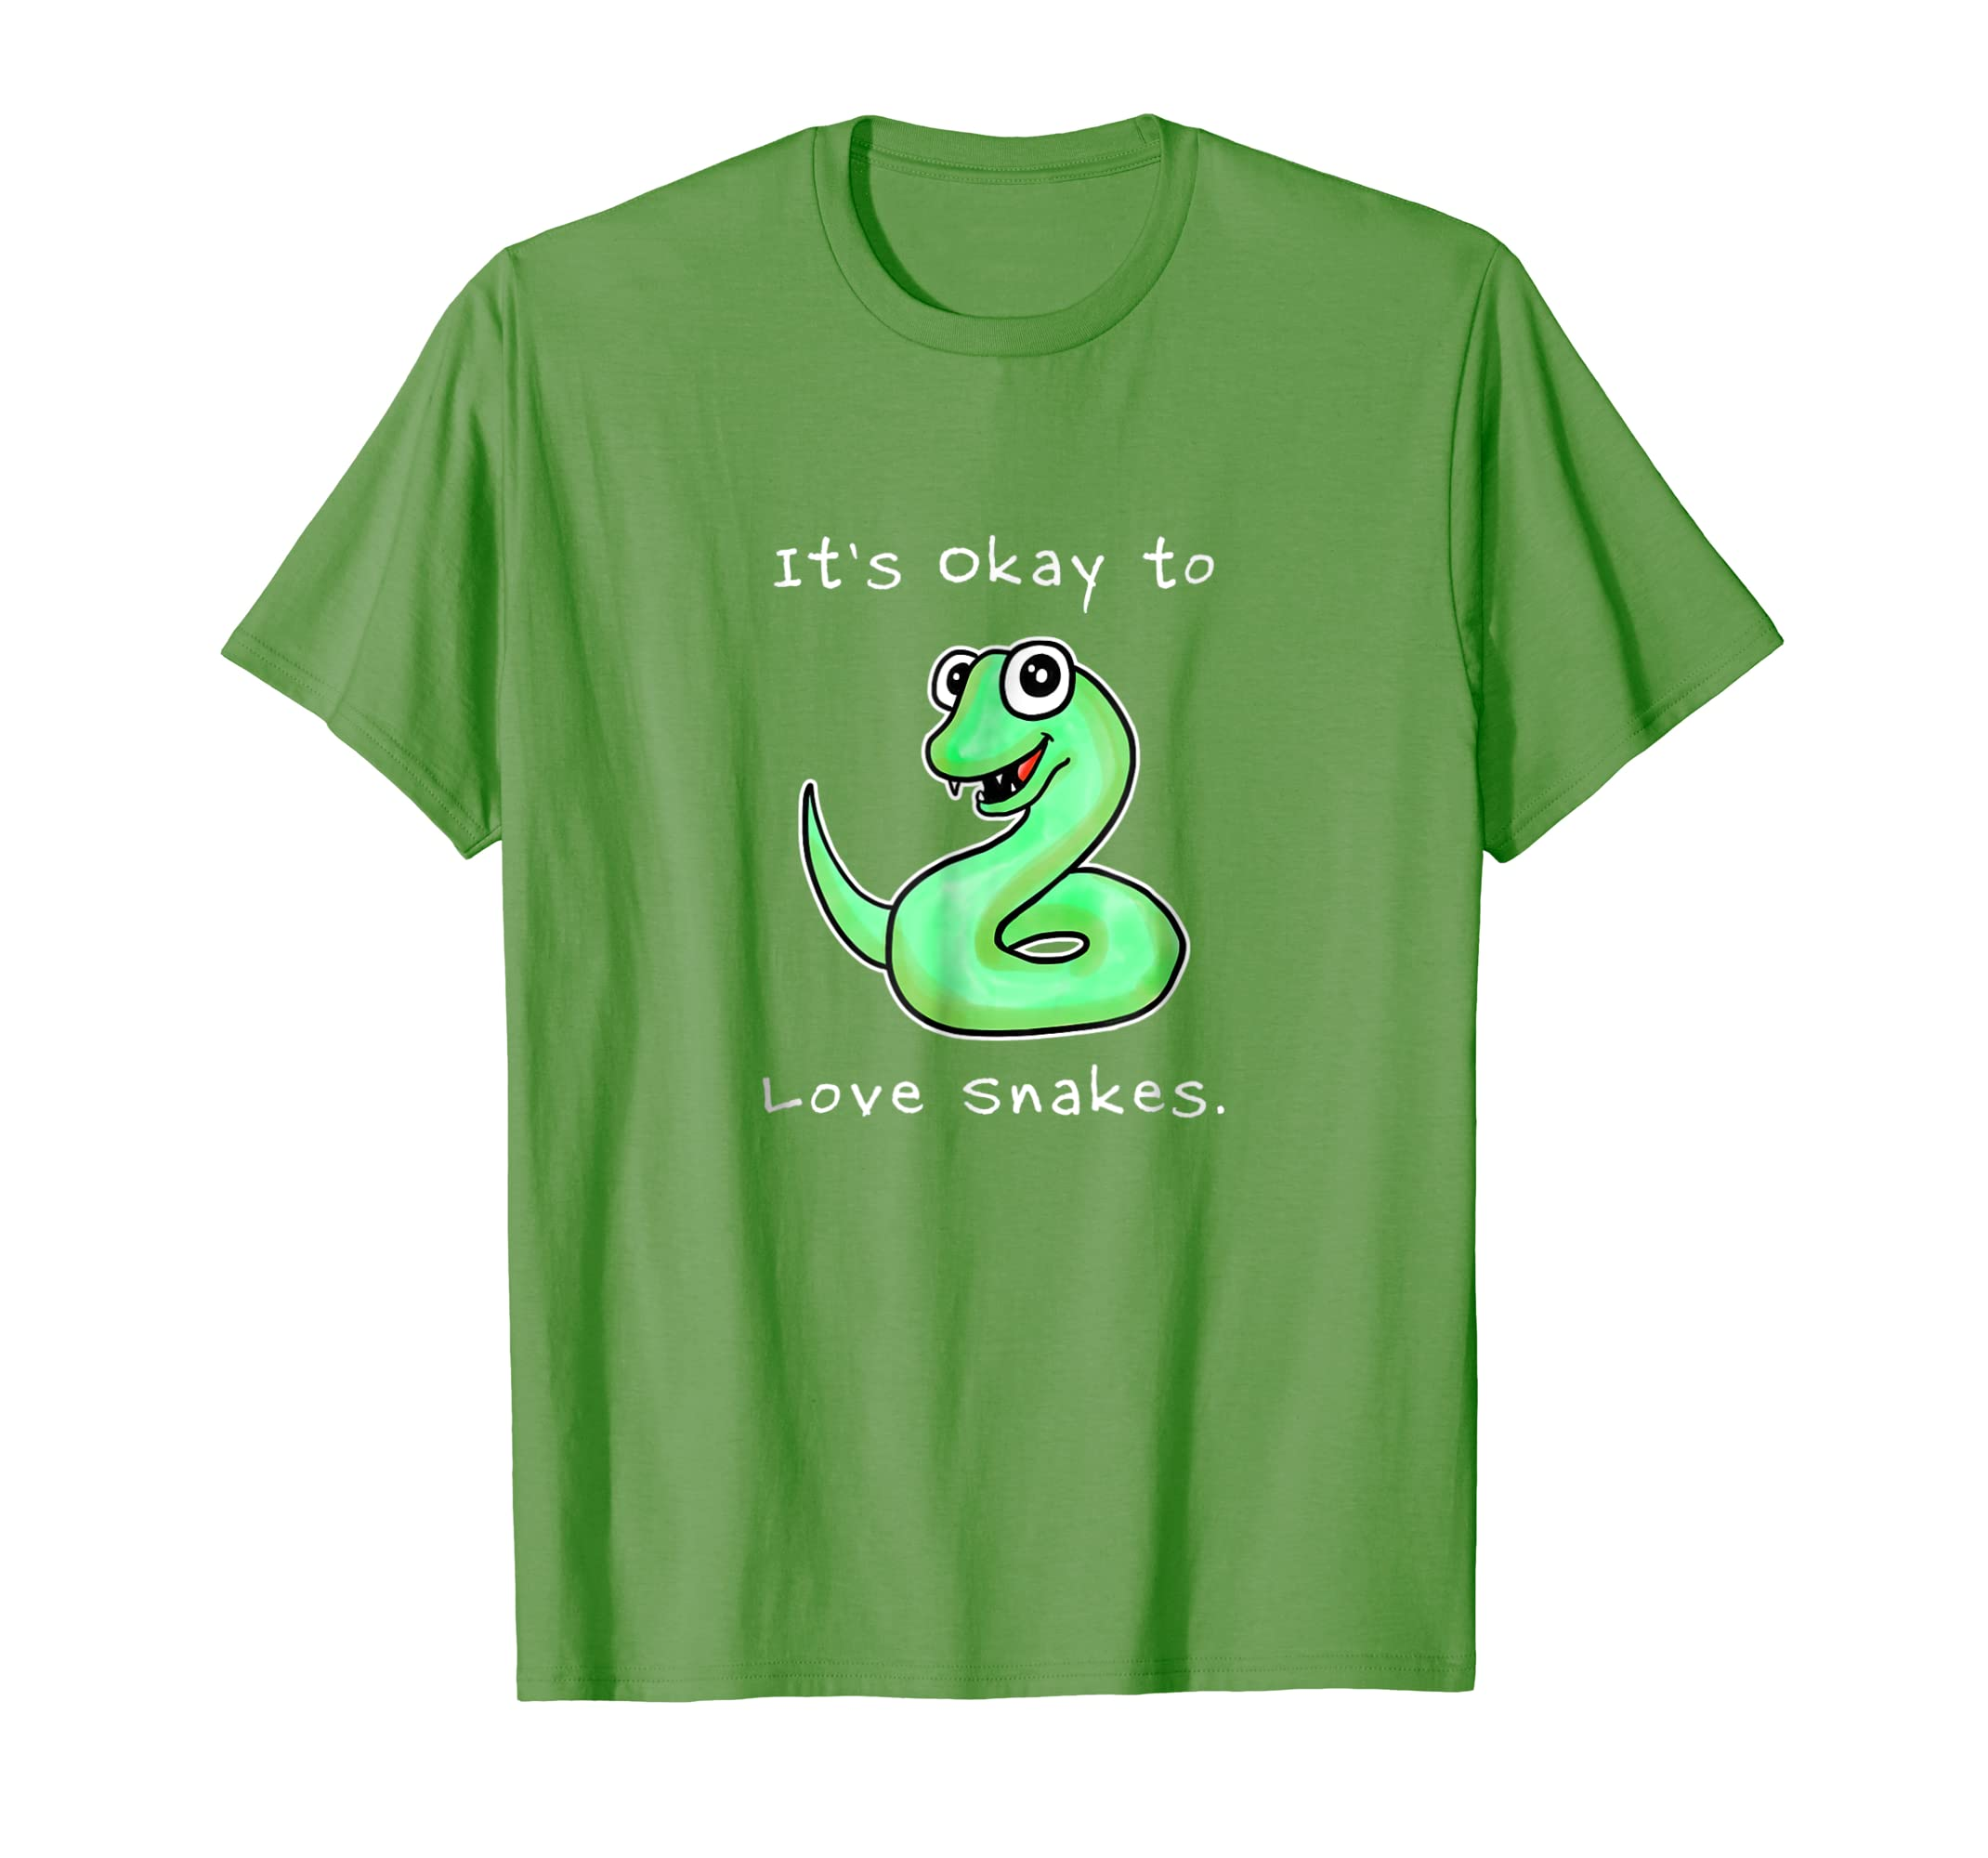 f8867cb57782 Amazon.com: It's Okay To Love Snakes T-Shirt Funny Snake Tee by Kayleel:  Clothing